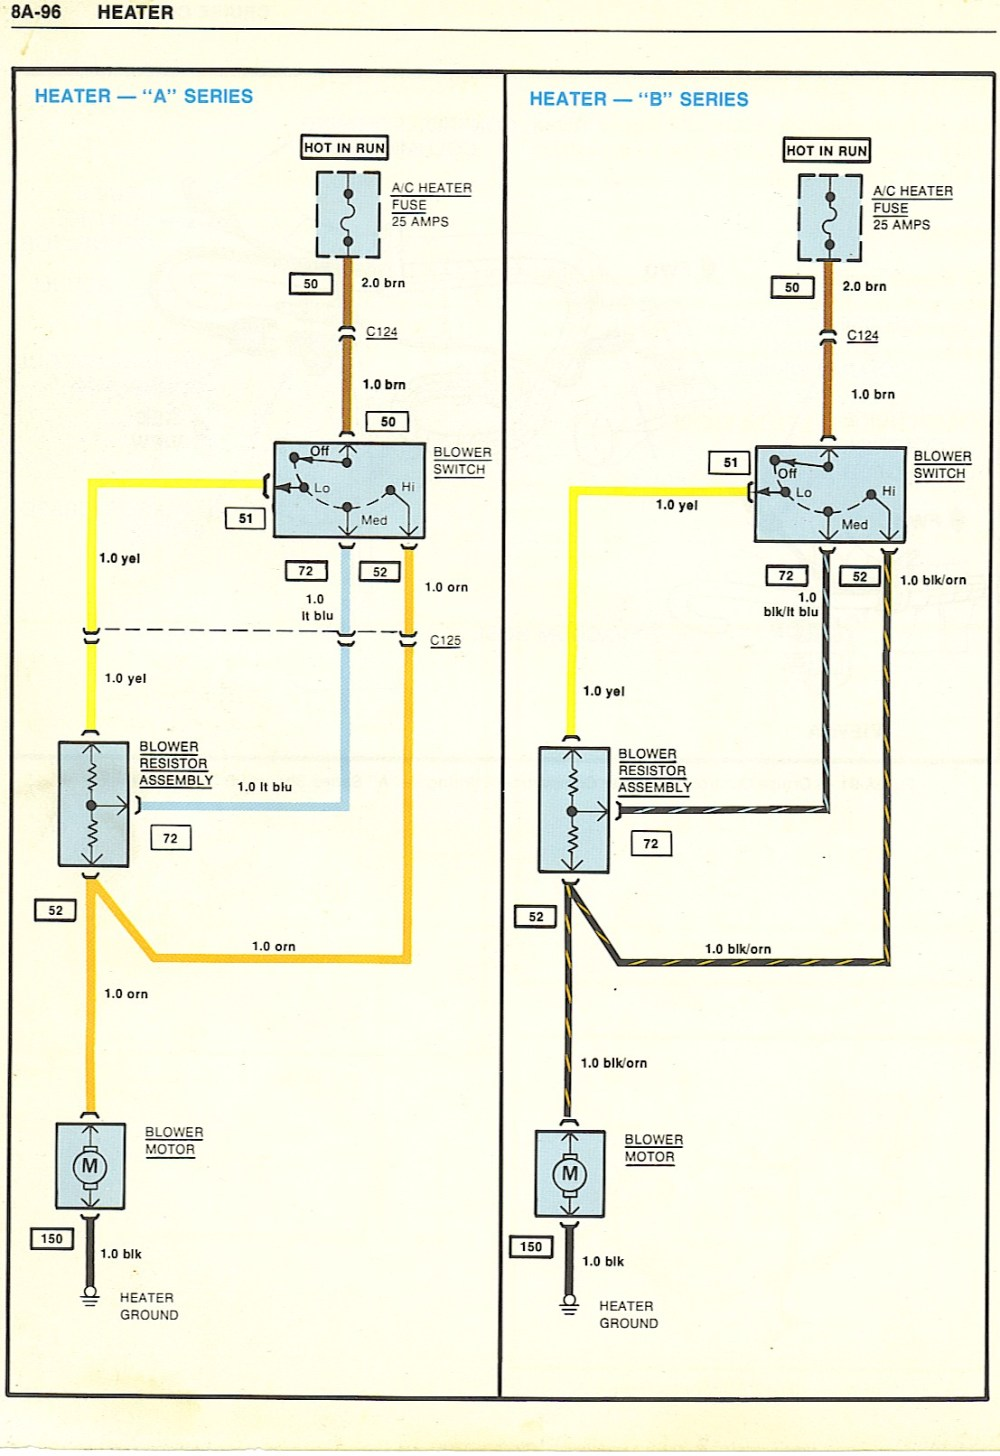 medium resolution of 1987 el camino wiper wiring diagram schematic wiring library 305 el camino distthe wiring to the 4 prong connector